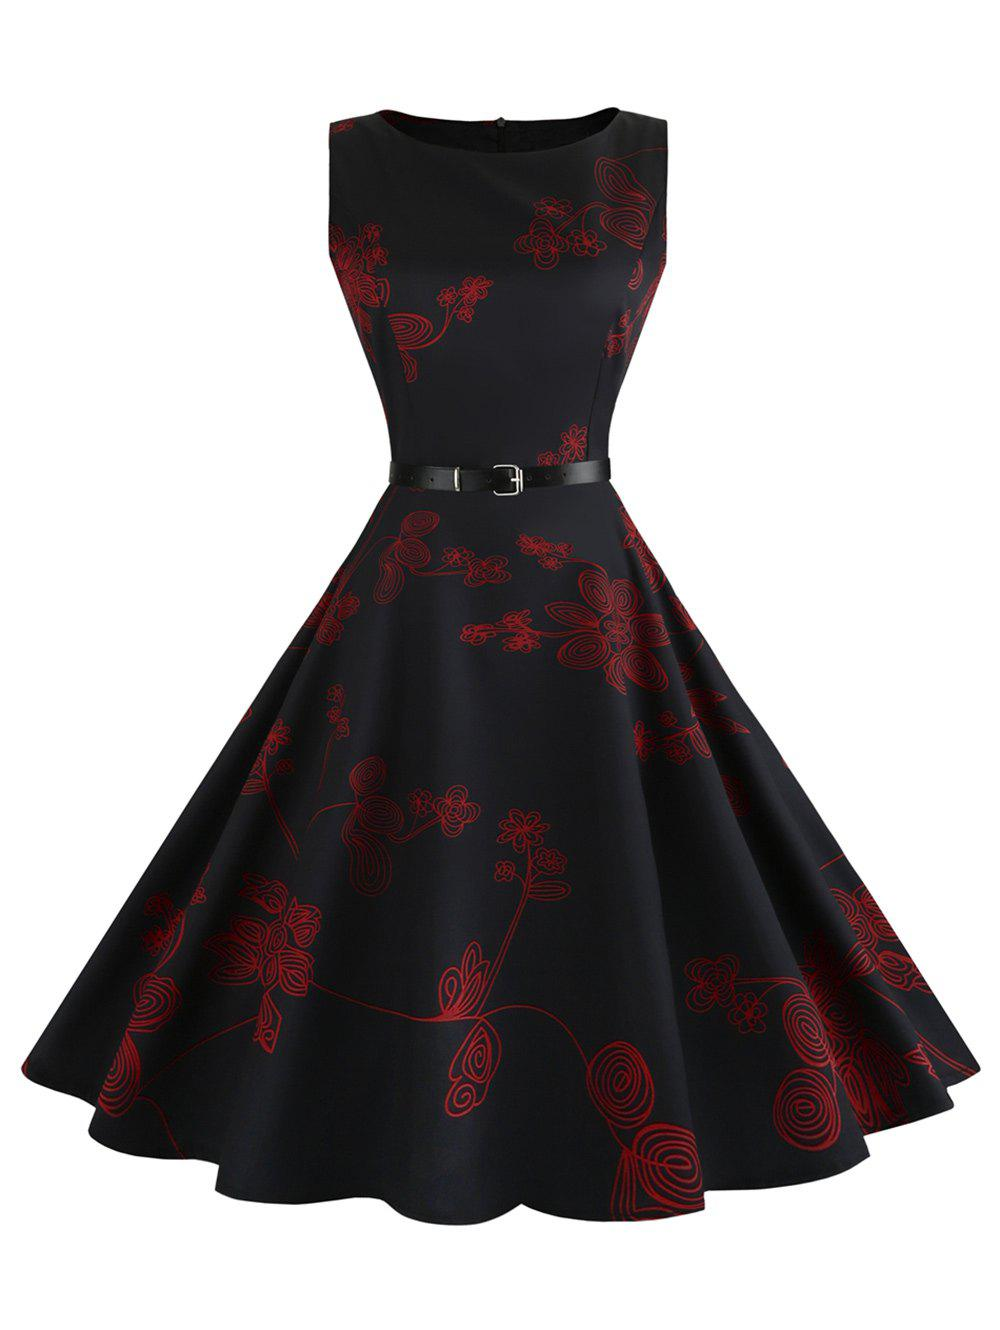 Floral Sleeveless Vintage Fit and Flare DressWOMEN<br><br>Size: L; Color: RED; Style: Vintage; Material: Cotton,Polyester; Silhouette: A-Line; Dress Type: Fit and Flare Dress,Swing Dress; Dresses Length: Mid-Calf; Neckline: Round Collar; Sleeve Length: Sleeveless; Pattern Type: Floral; With Belt: Yes; Season: Summer; Weight: 0.2500kg; Package Contents: 1 x Dress 1 x Belt;